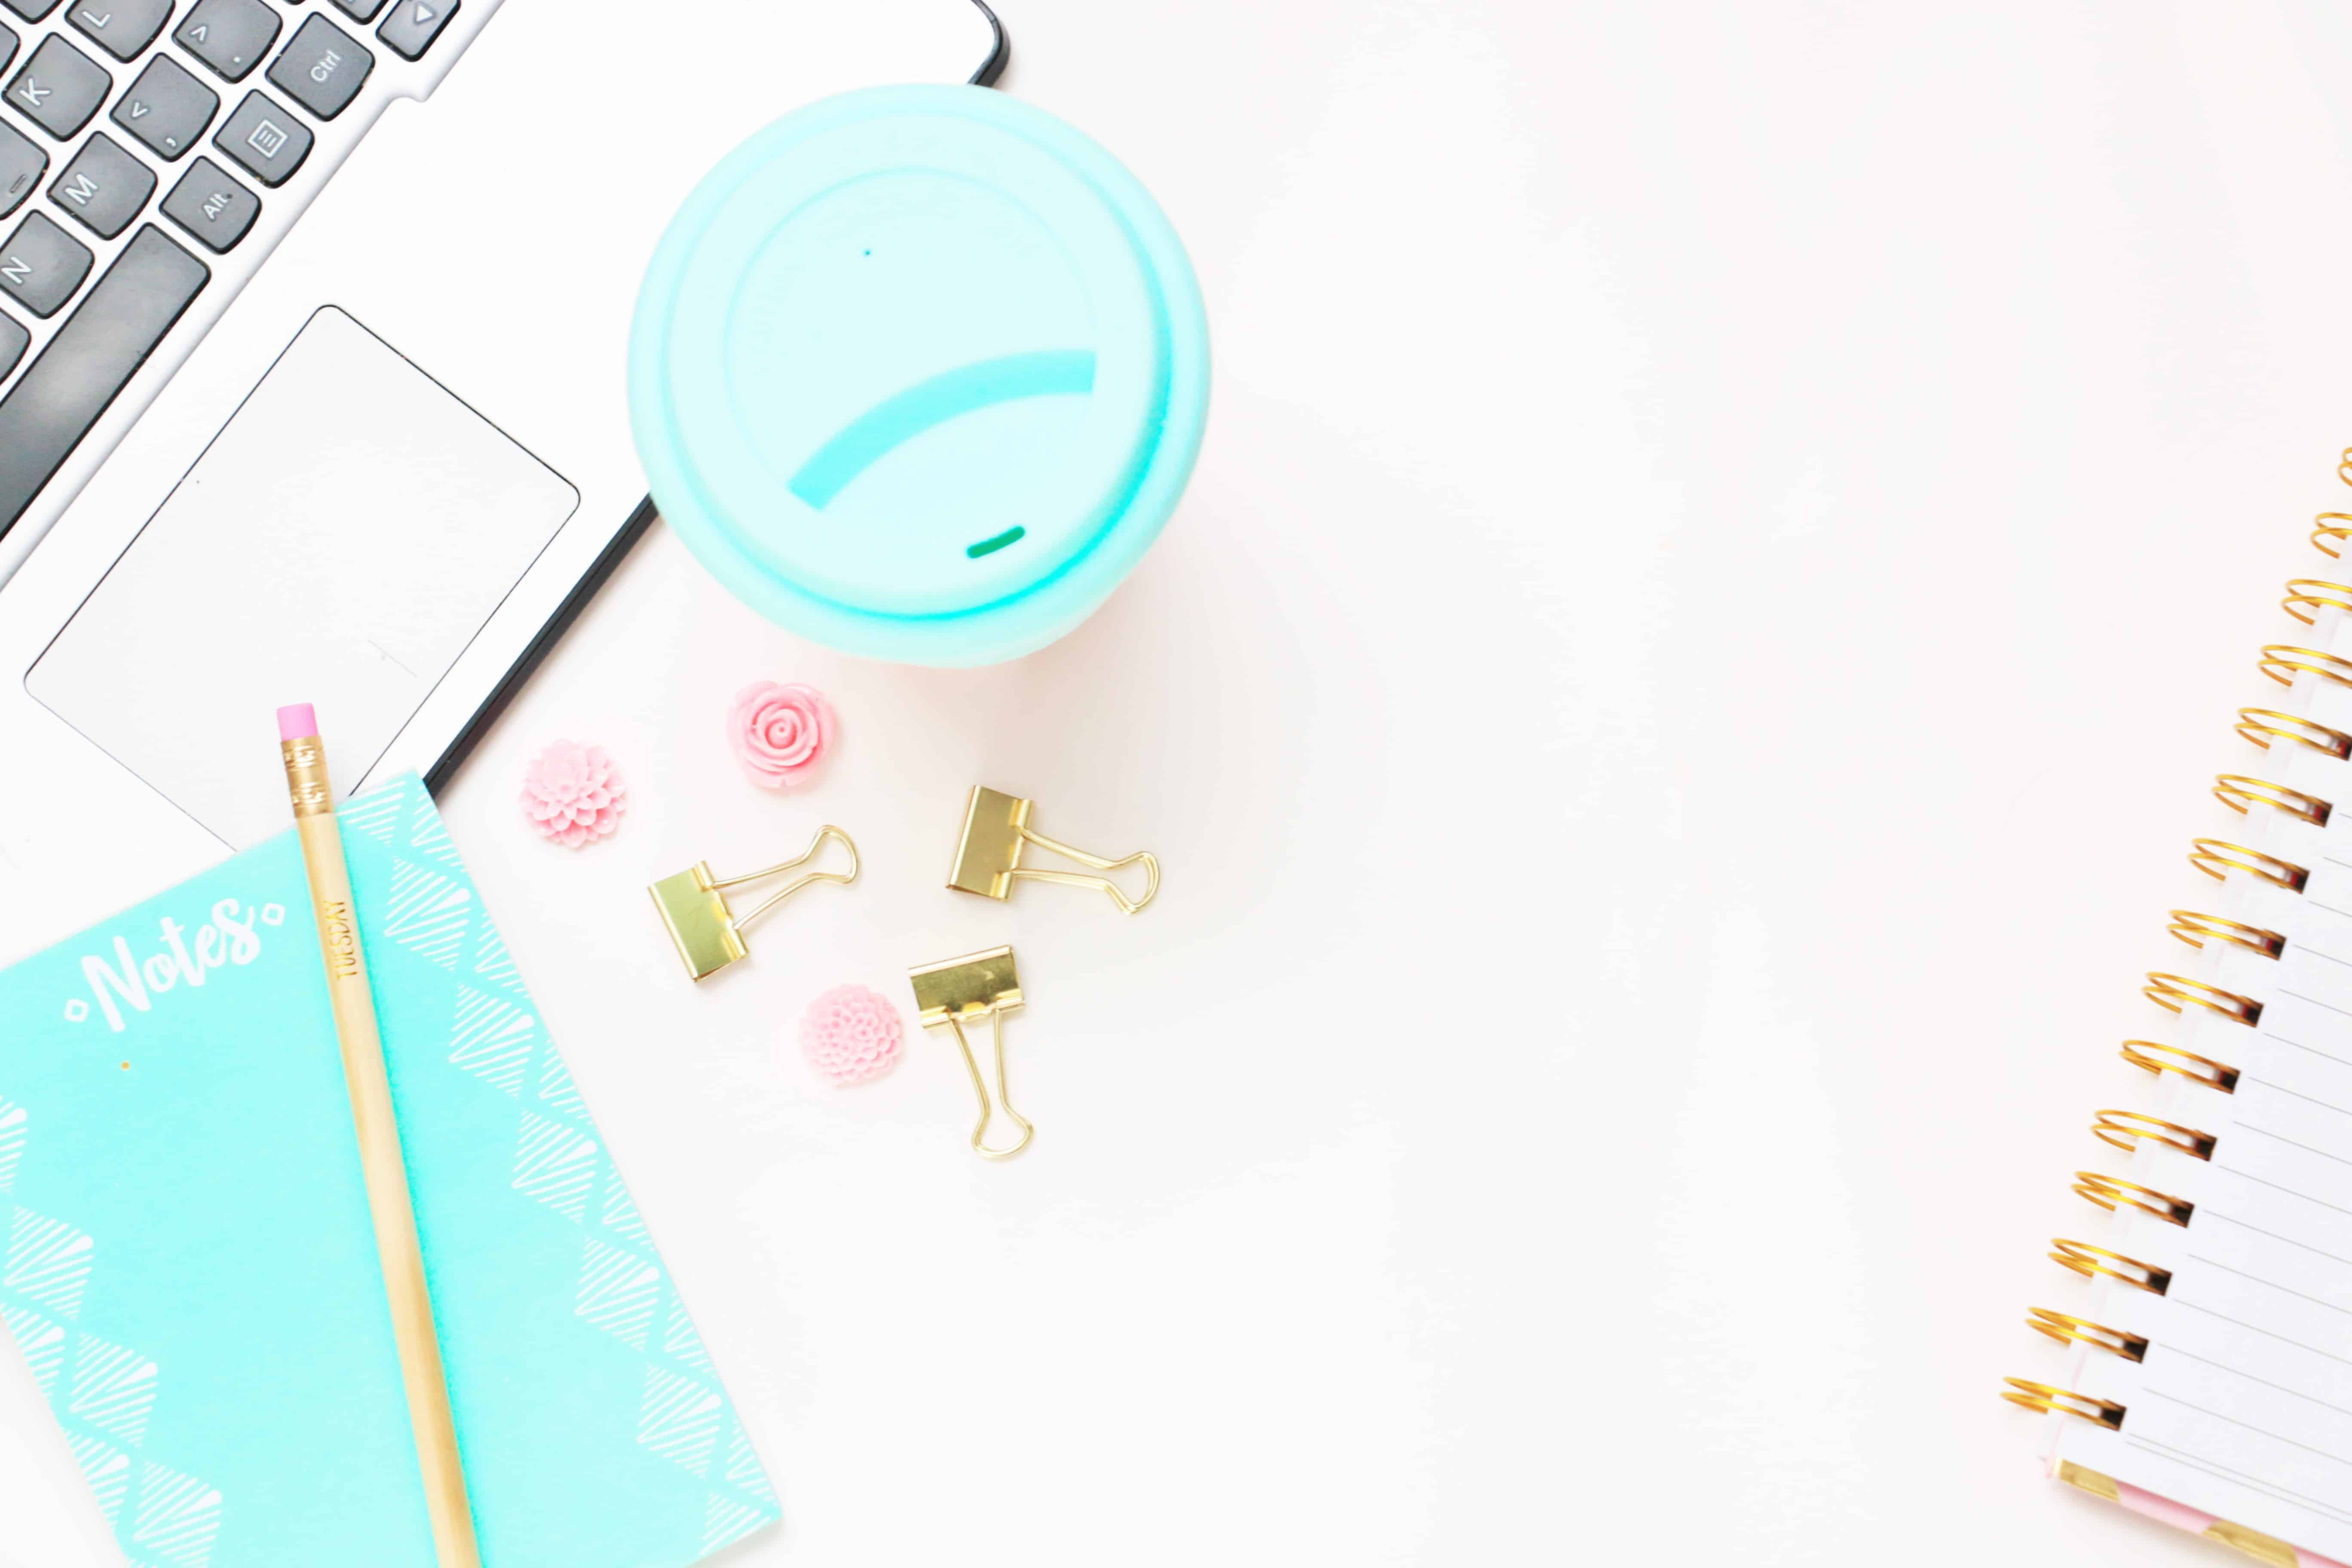 coffee with a light blue lid on a desk, with a laptop, and binder clips